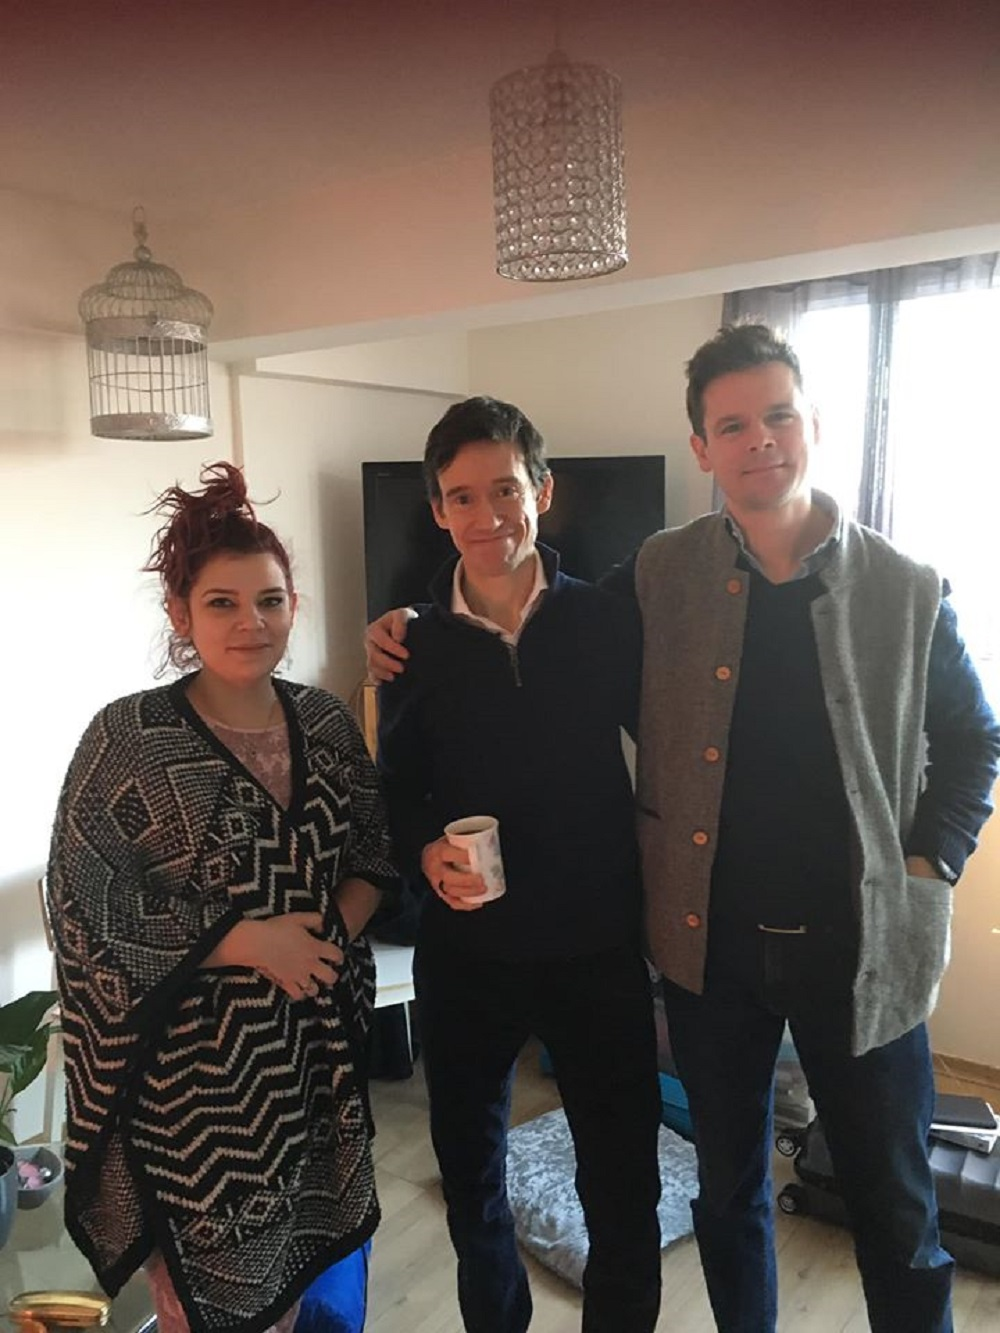 Rory Stewart spoke with volunteer Ria (left) during his stay at Lorraine Tabone's flat